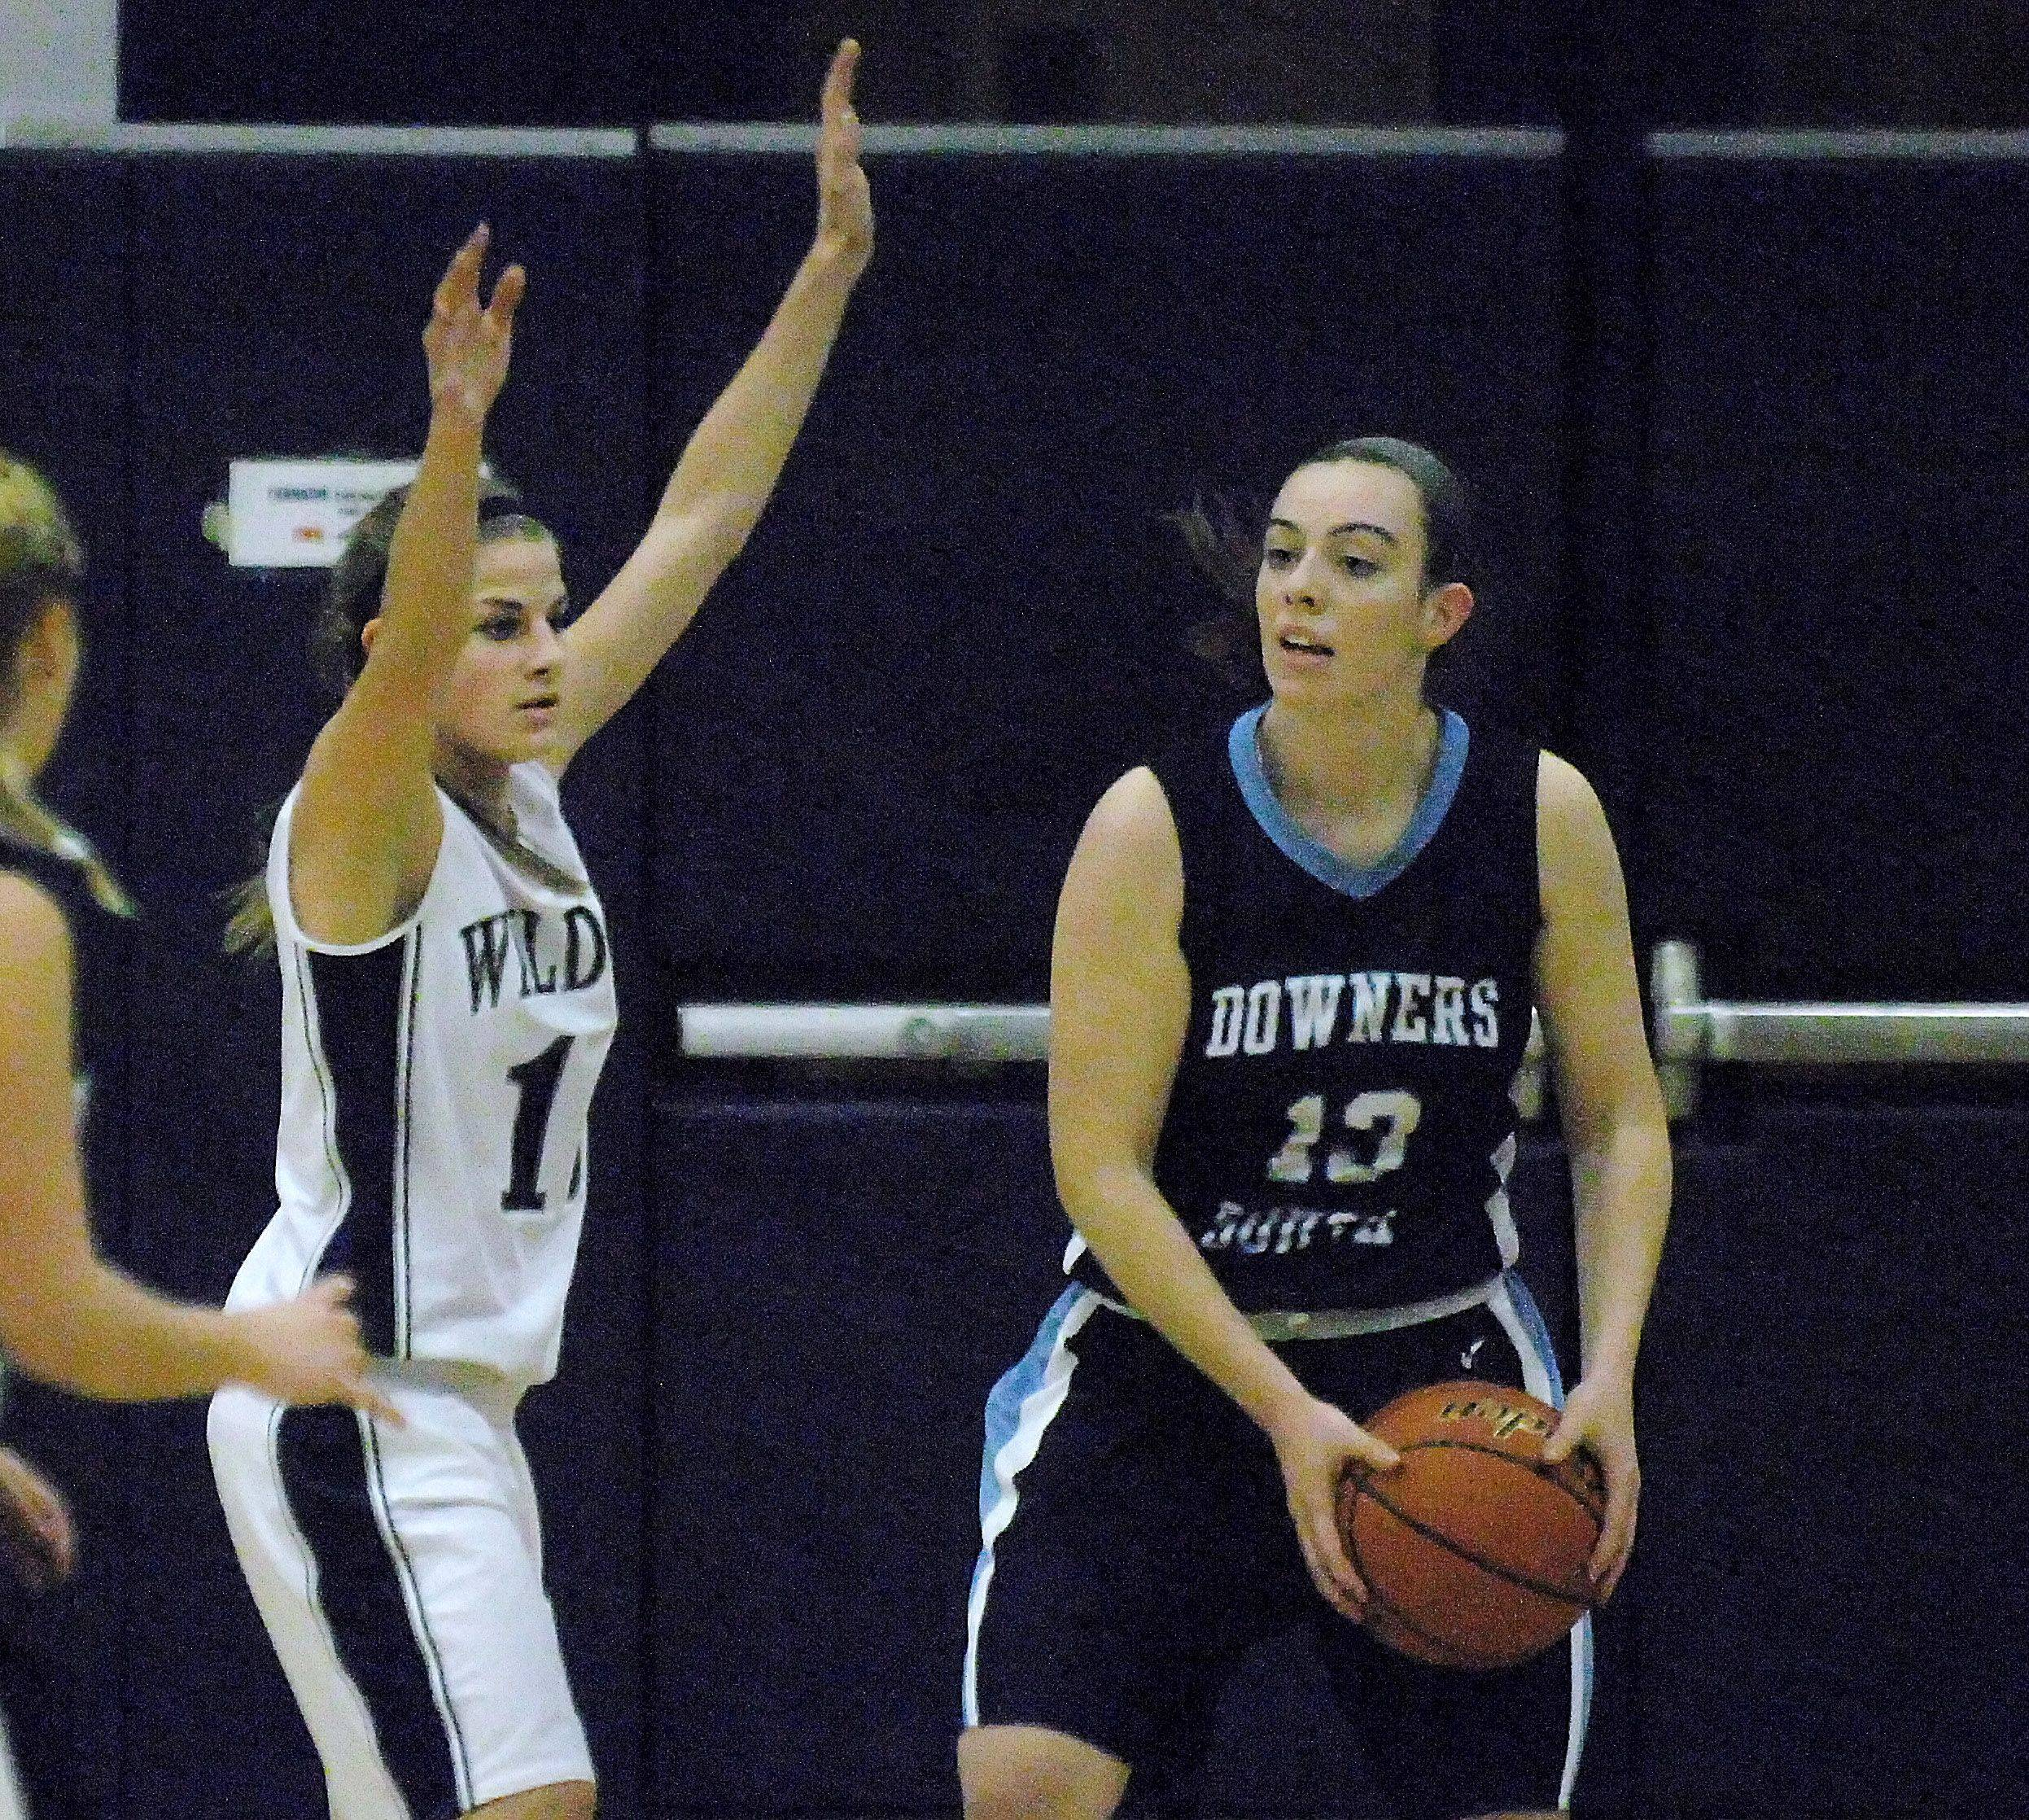 Images of West Chicago vs. Downers Grove South girls basketball in Oswego.